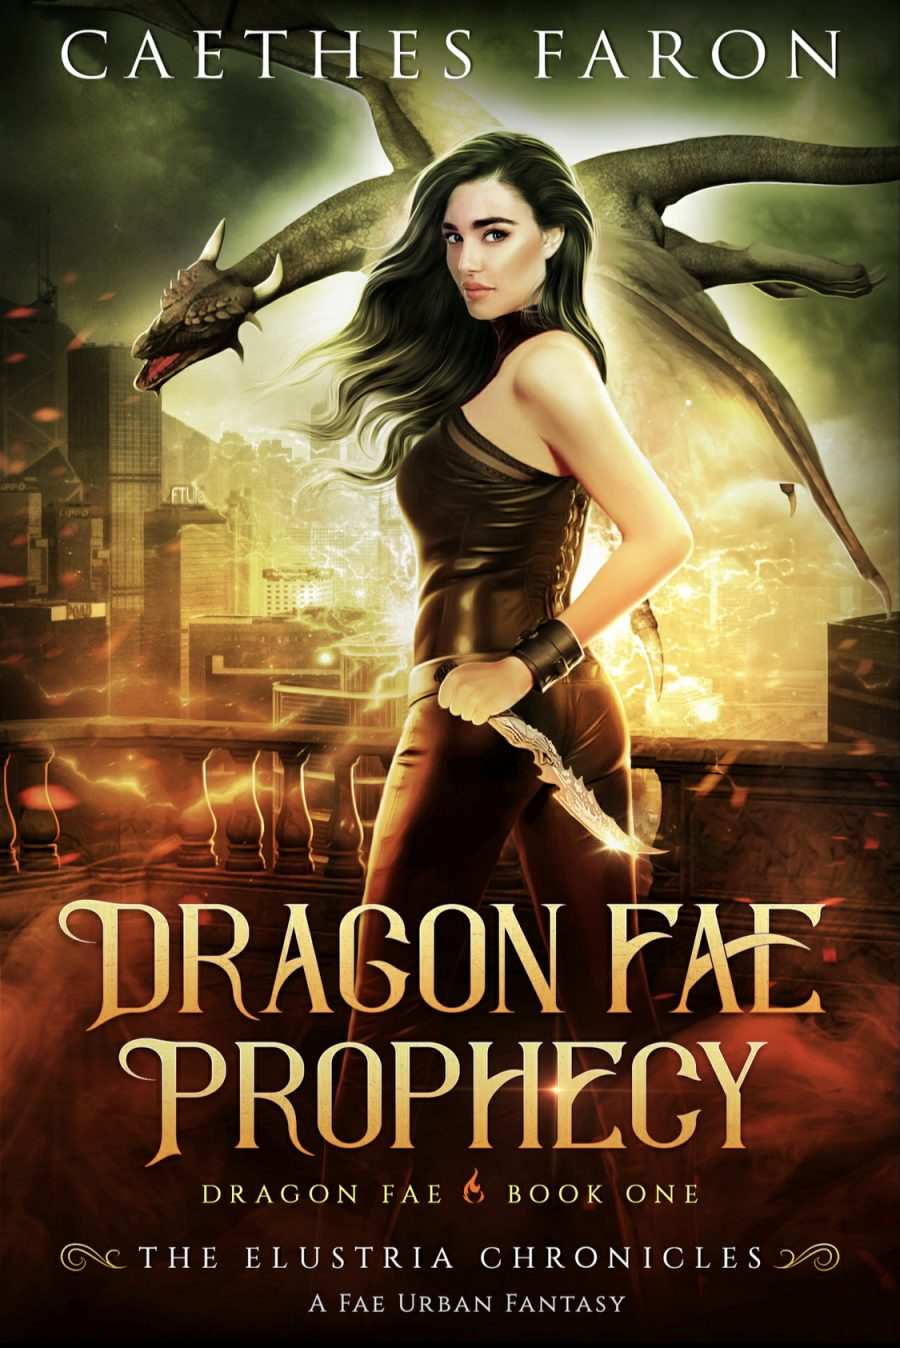 Dragon Fae Prophecy (Dragon Fae - Book 1) by Caethes Faron - A Book Review #BookReview #UrbanFantasy #Fae #Fantasy #UF #4Stars #KindleUnlimited #KU